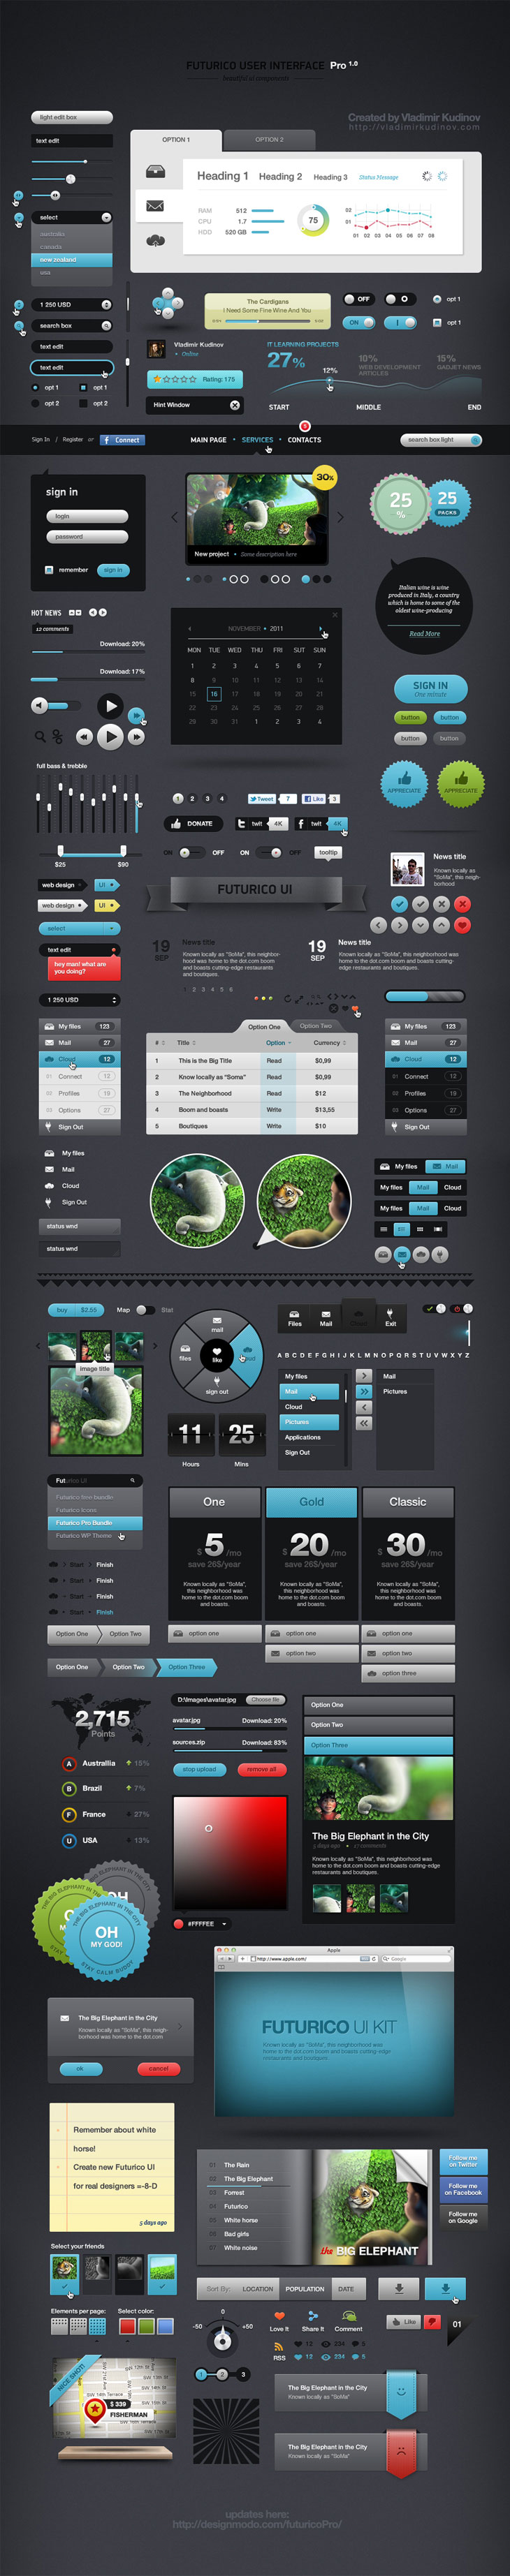 Futurico UI Pro Advanced User Interface Elements